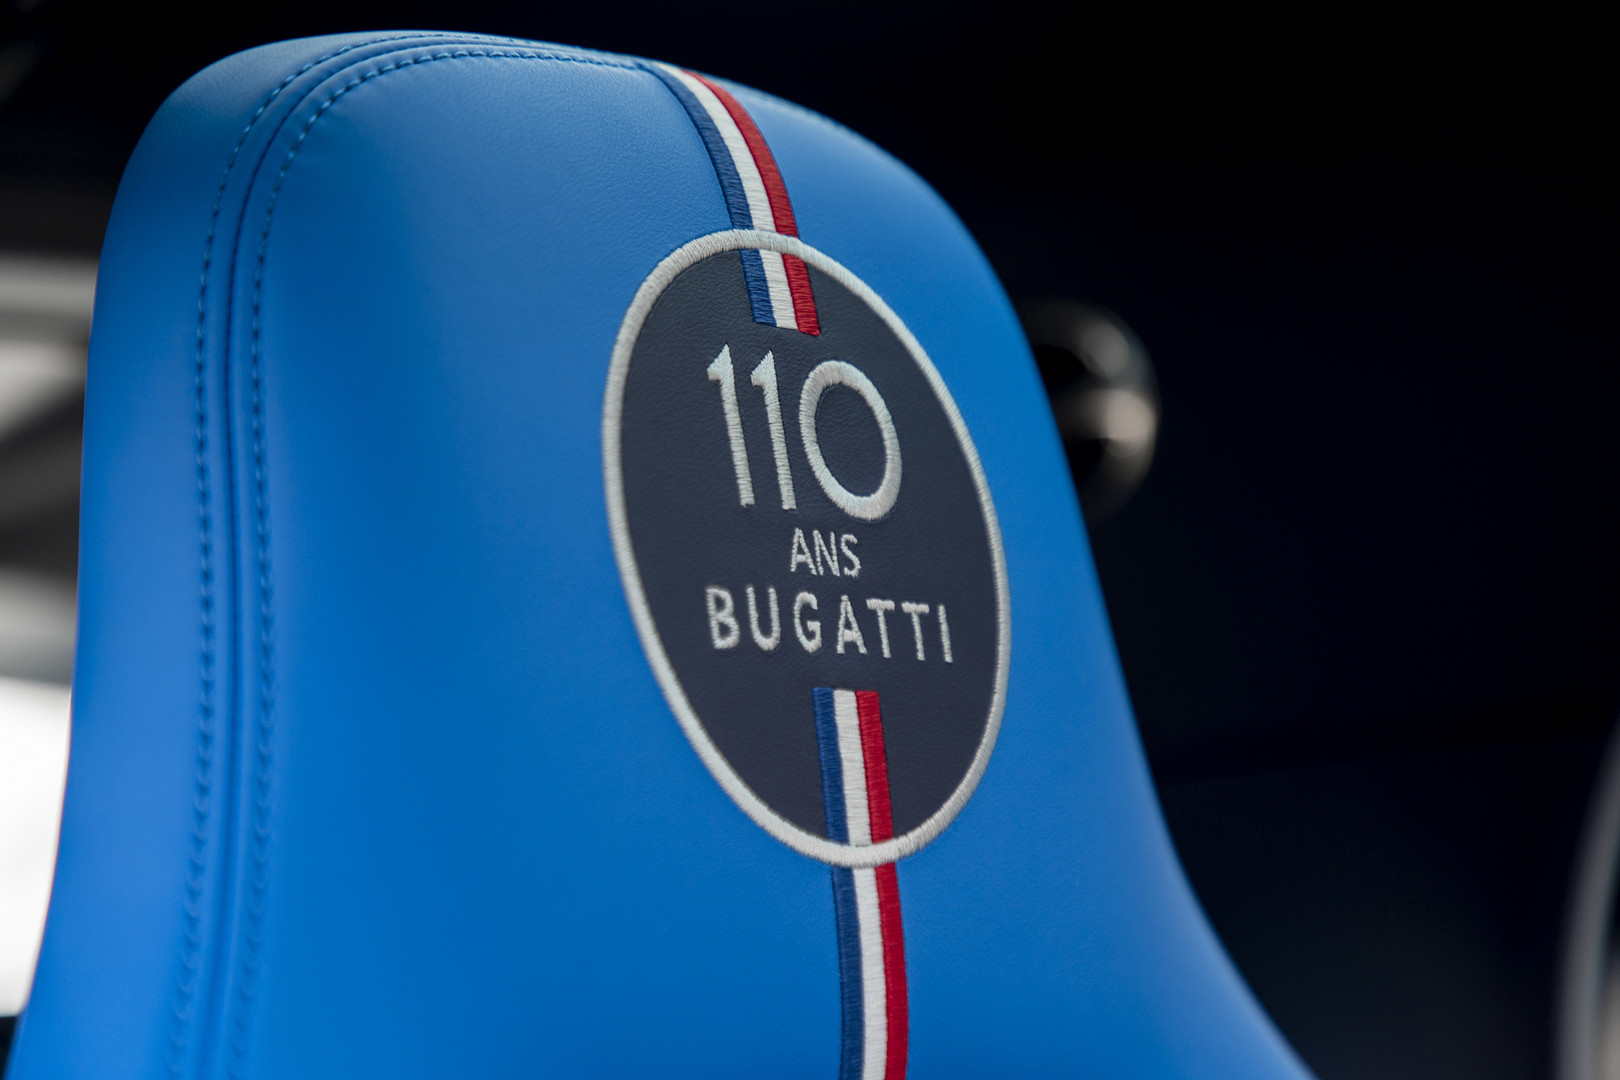 Bugatti Reveals Special Edition Of The Chiron Sport On Its 110th Anniversary